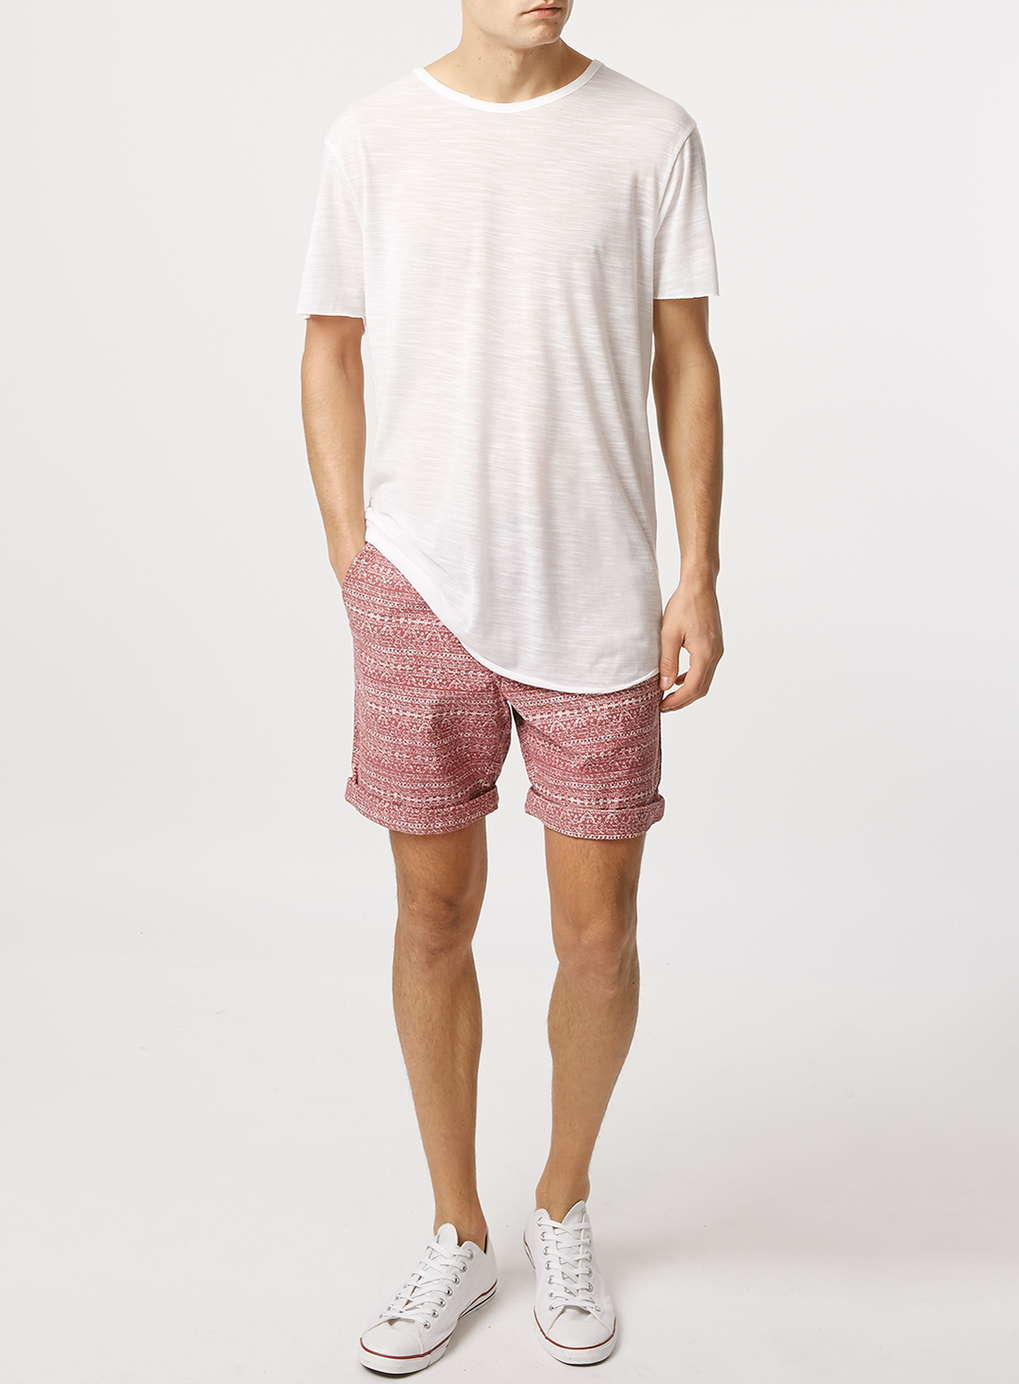 Topman White Slub Long Line T-shirt in White for Men | Lyst